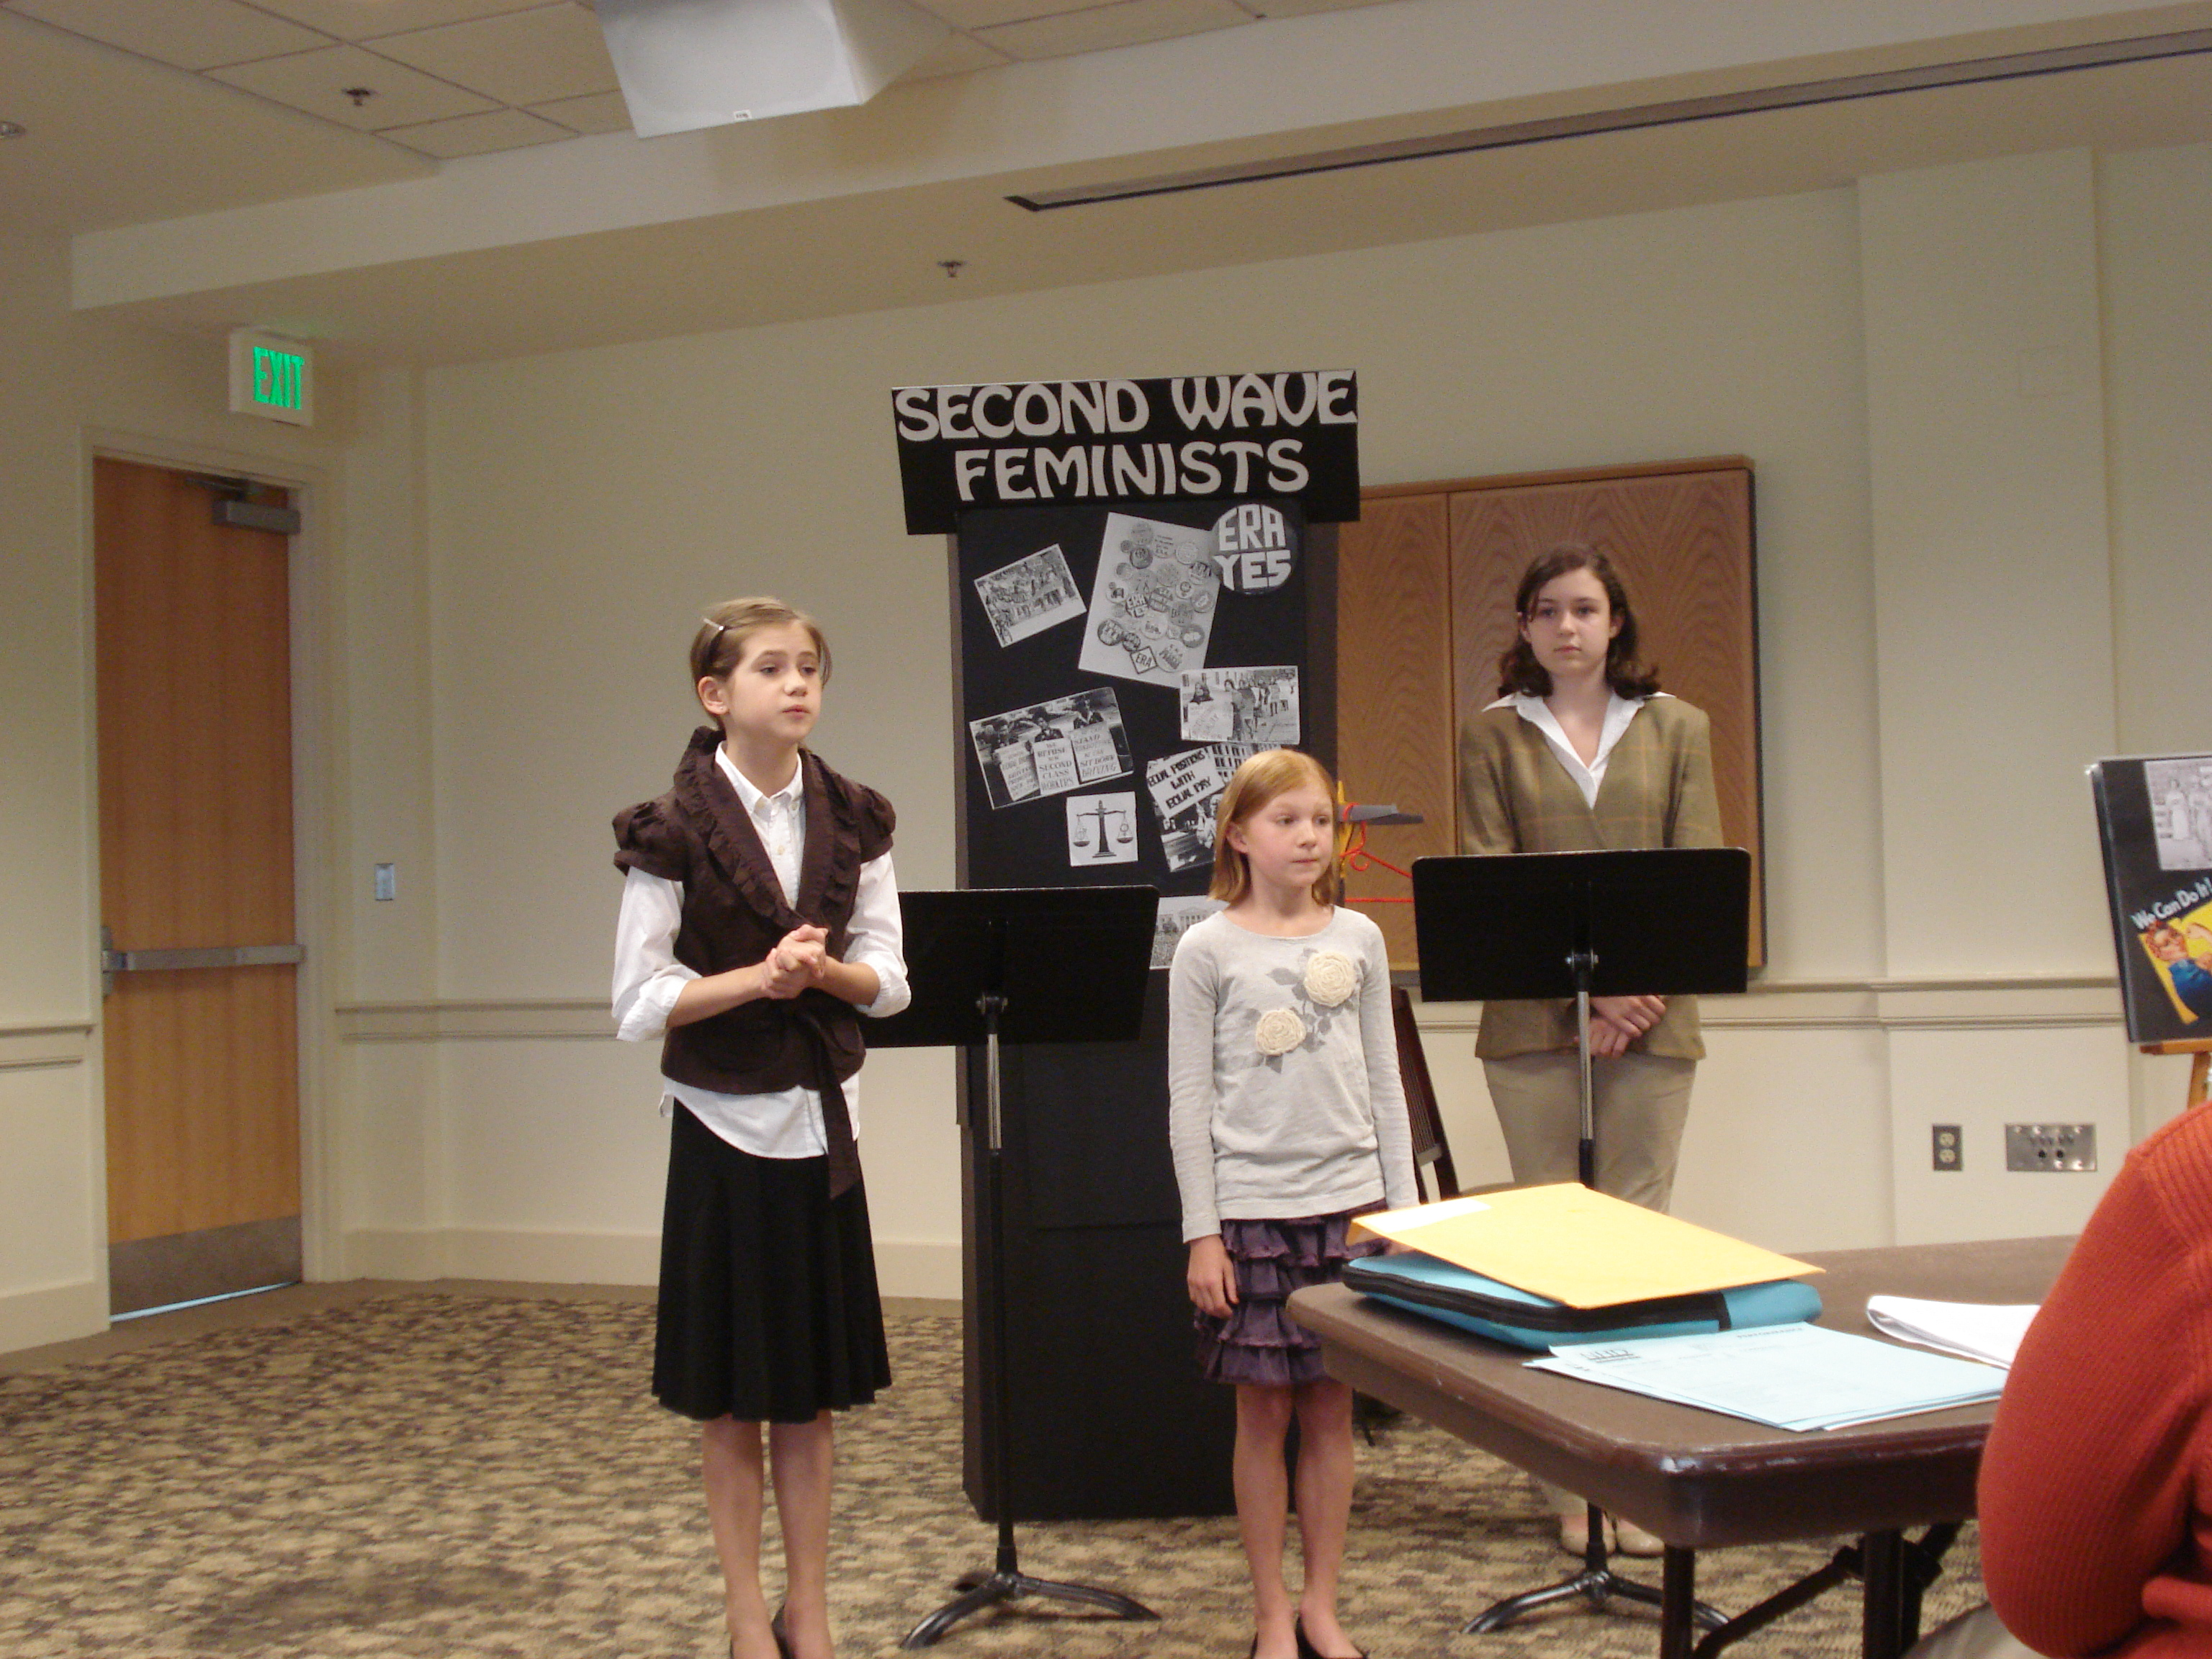 Students competing in 2011 at National History Day. Katherine Clark, Maggie Kubicek, and Margot Reid from Gilmour Academy perform their junior division project on women's rights at the 2011 National History Day competition